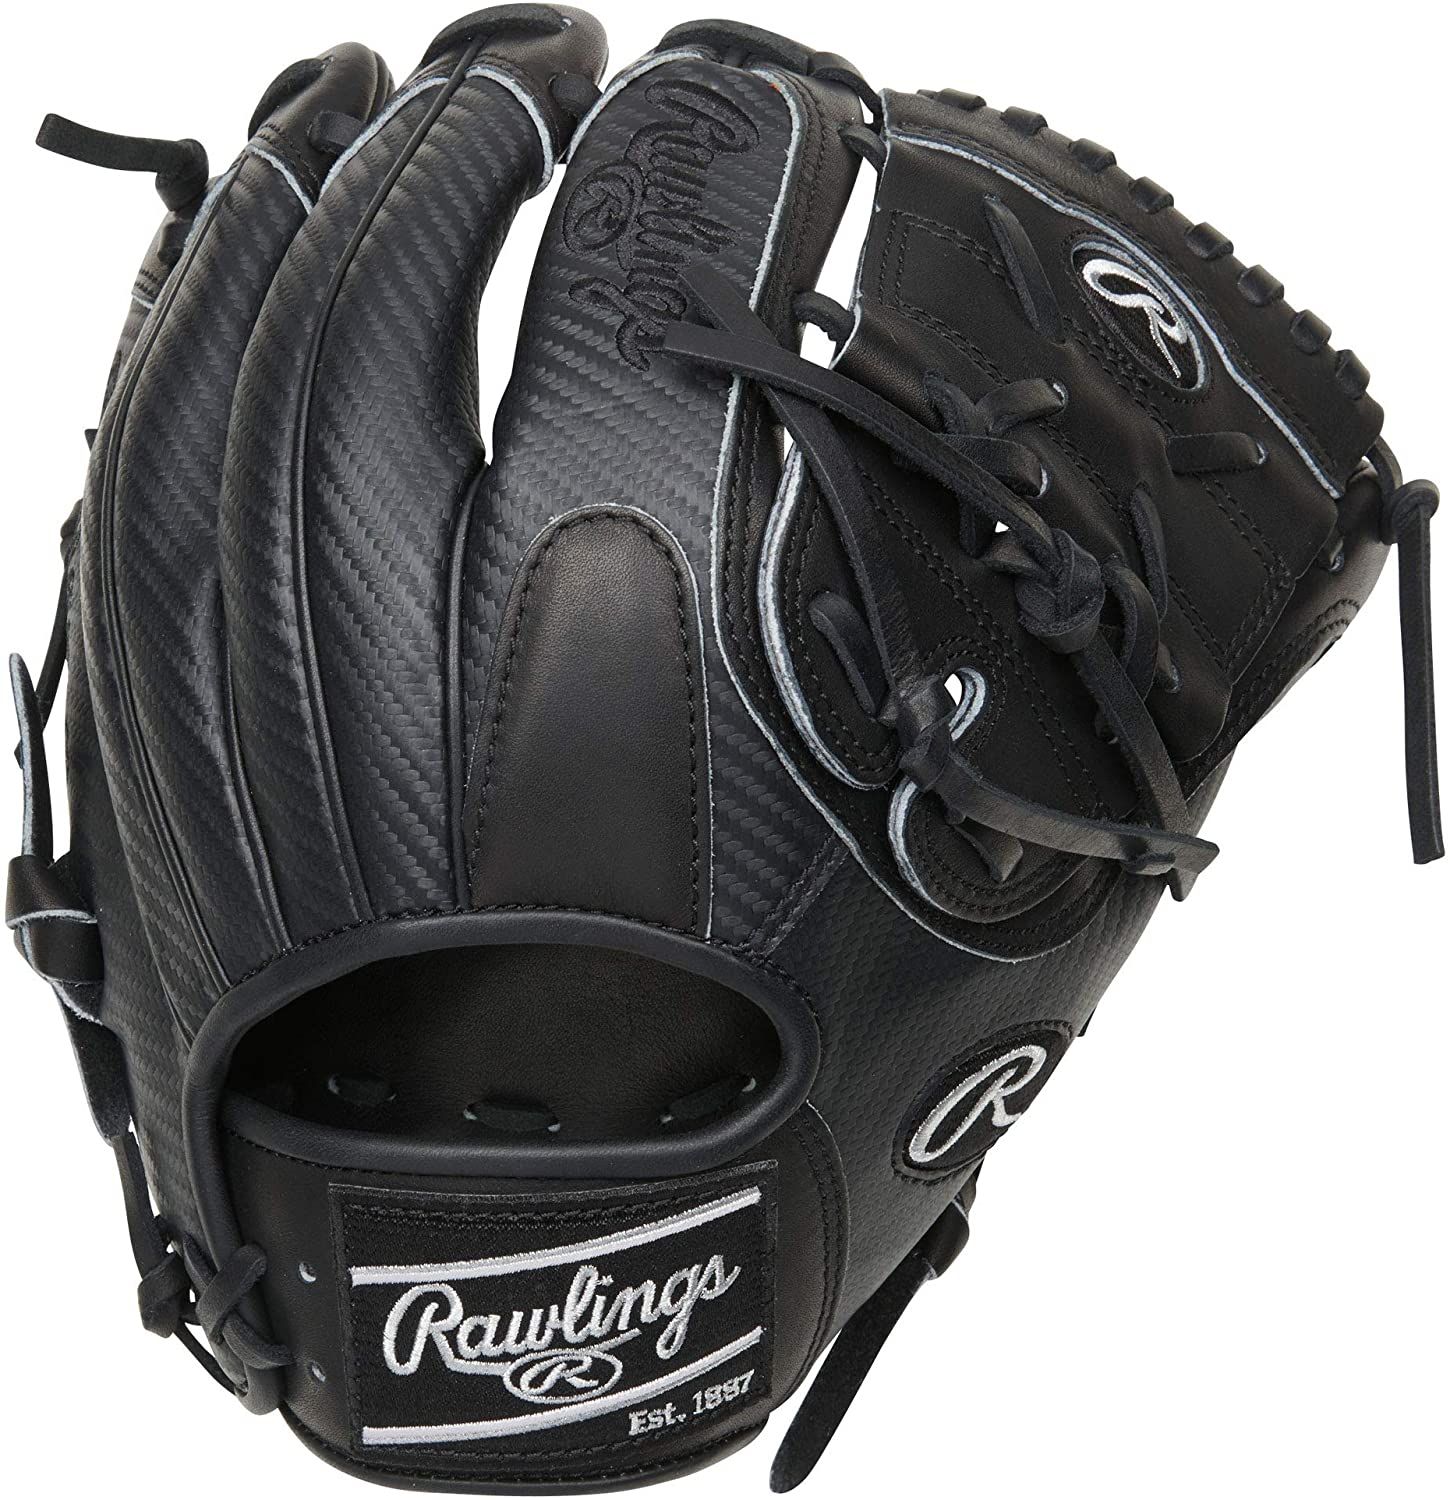 rawlings-heart-of-hide-hyber-shell-11-75-baseball-glove-right-hand-throw PRO205-9BCF-RightHandThrow  083321702624 <span>You'll have the fastest backhand glove in the game with the